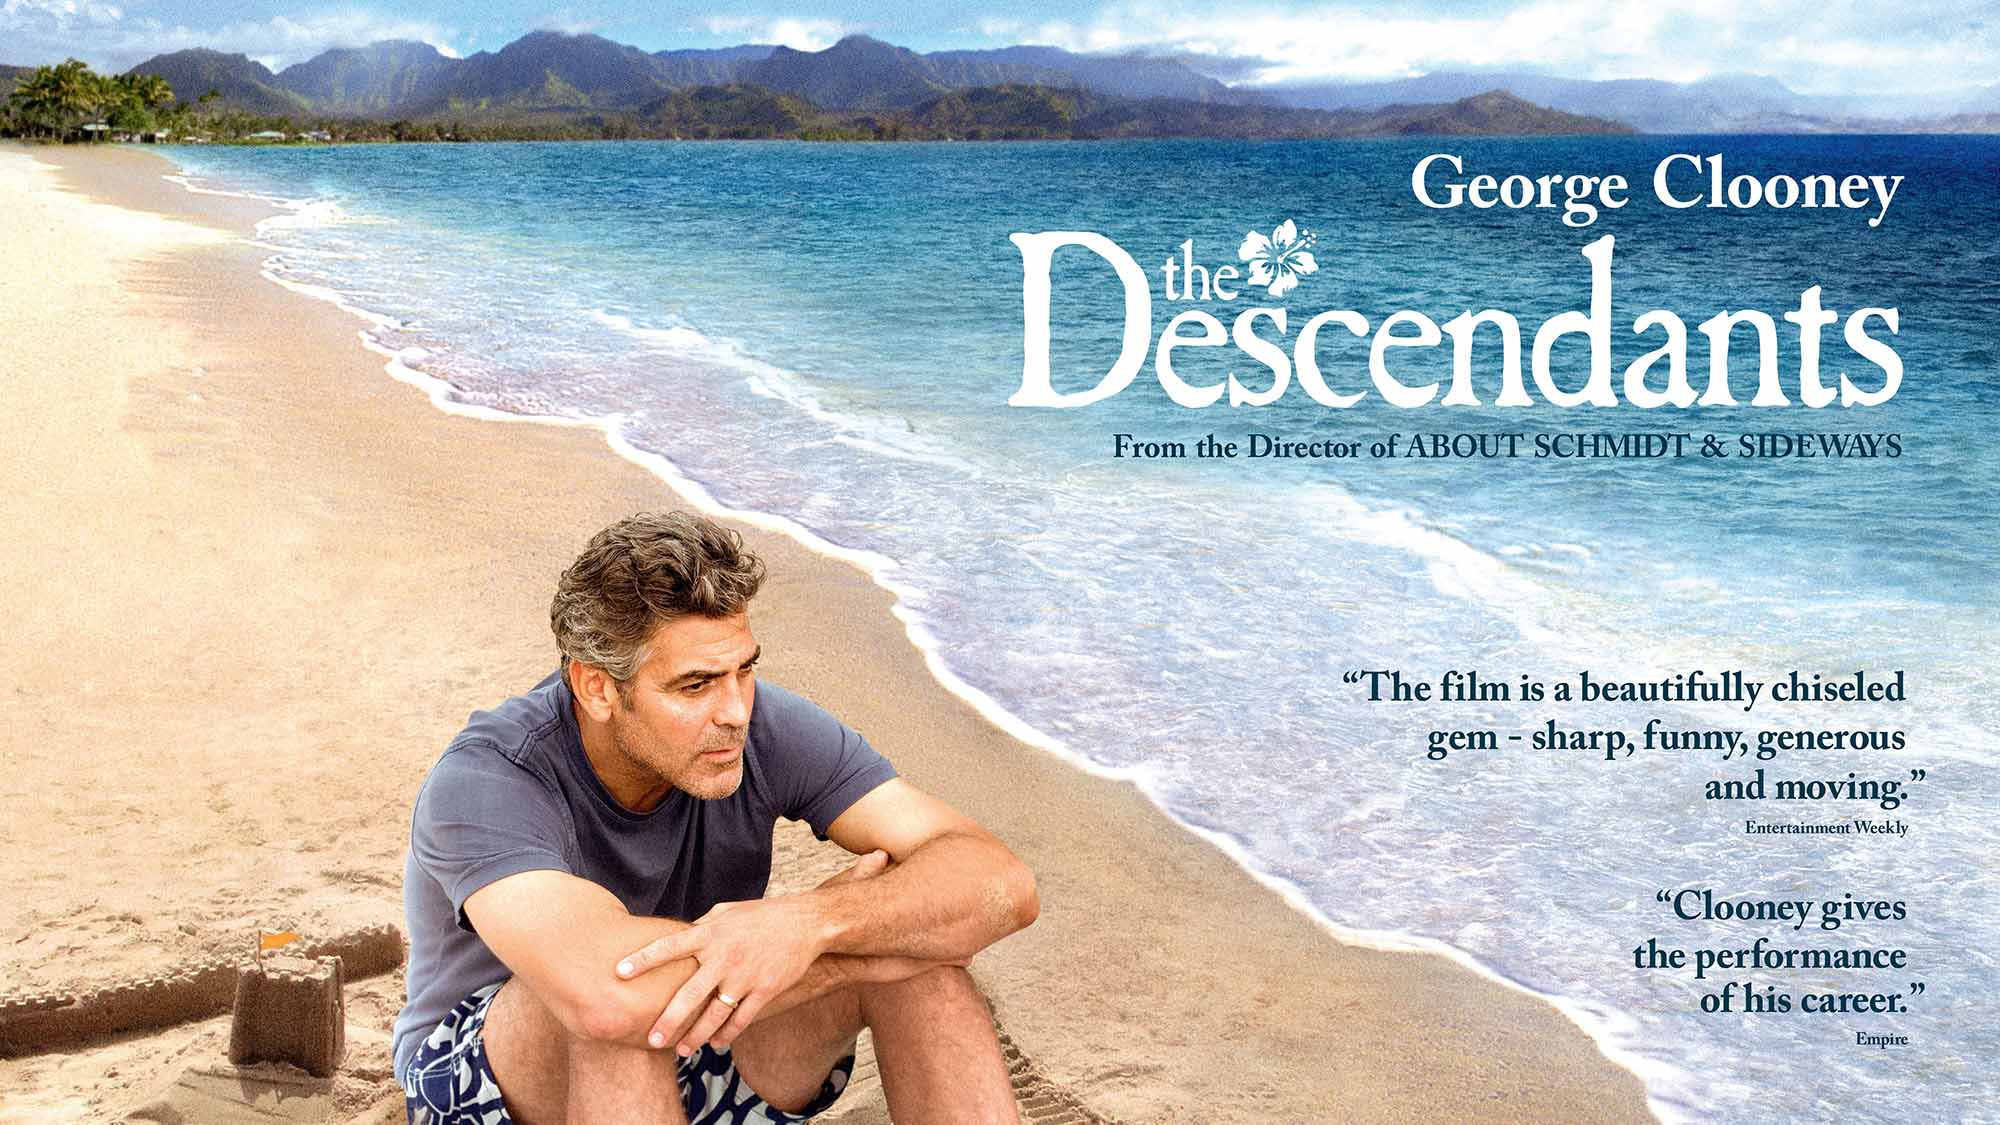 The Descendants movie image with George Clooney sitting on a beach